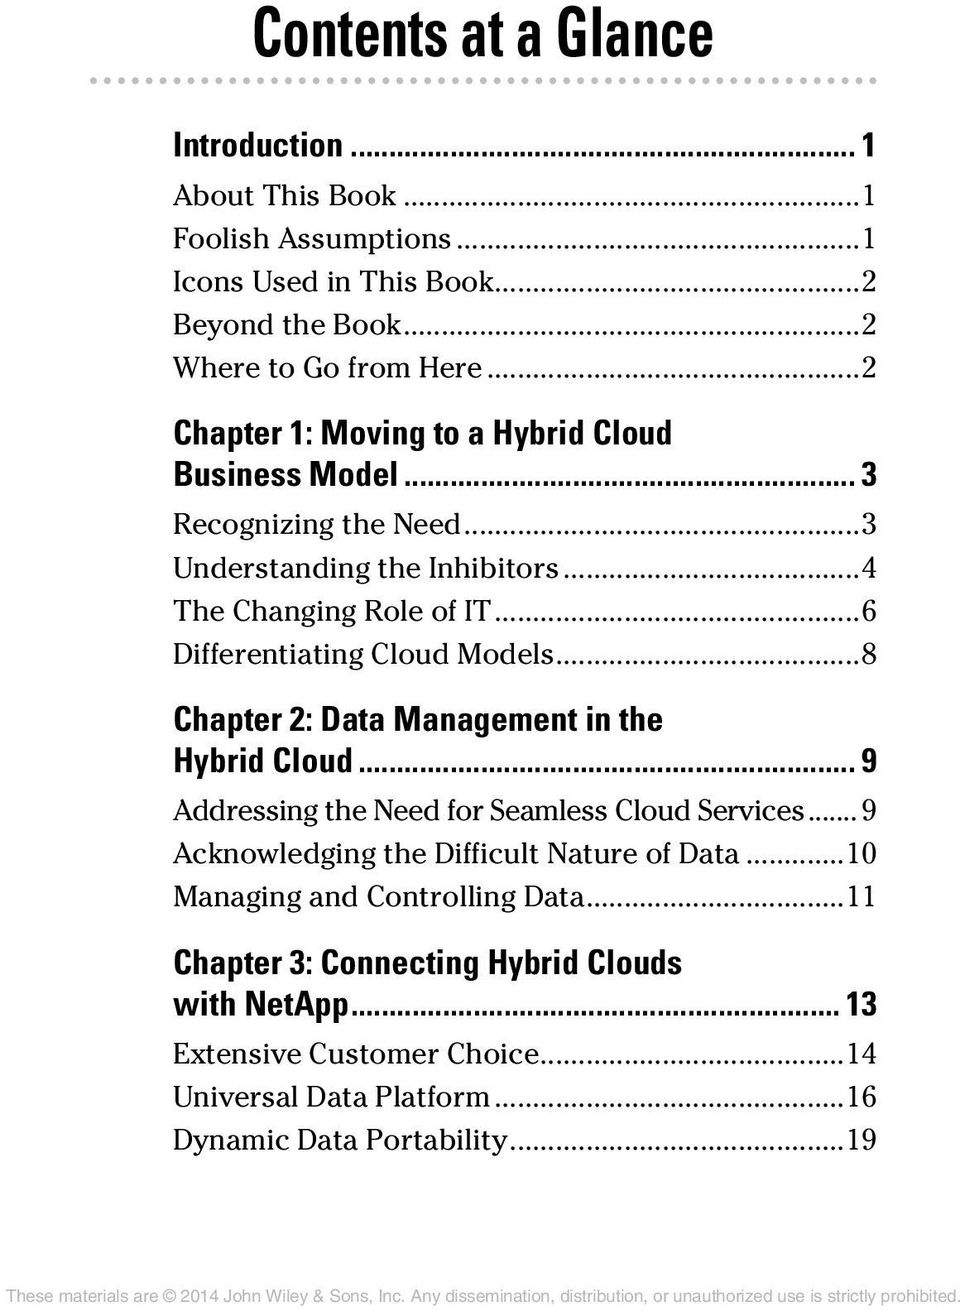 ..6 Differentiating Cloud Models...8 Chapter 2: Data Management in the Hybrid Cloud... 9 Addressing the Need for Seamless Cloud Services.